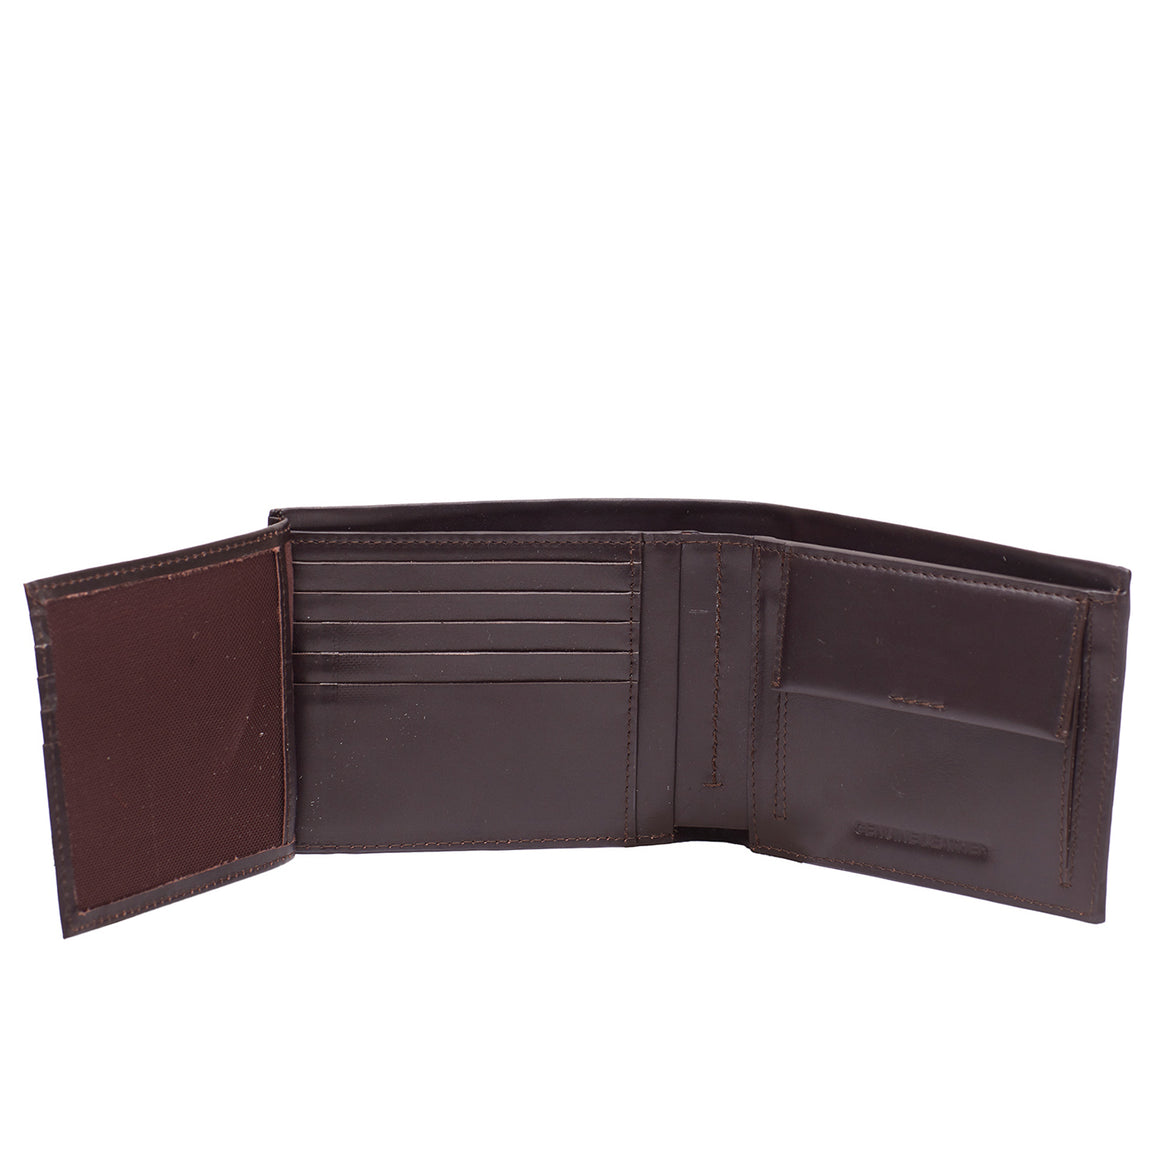 WT 0043 - TOHL ALBERI MEN'S WALLET - DARK BROWN